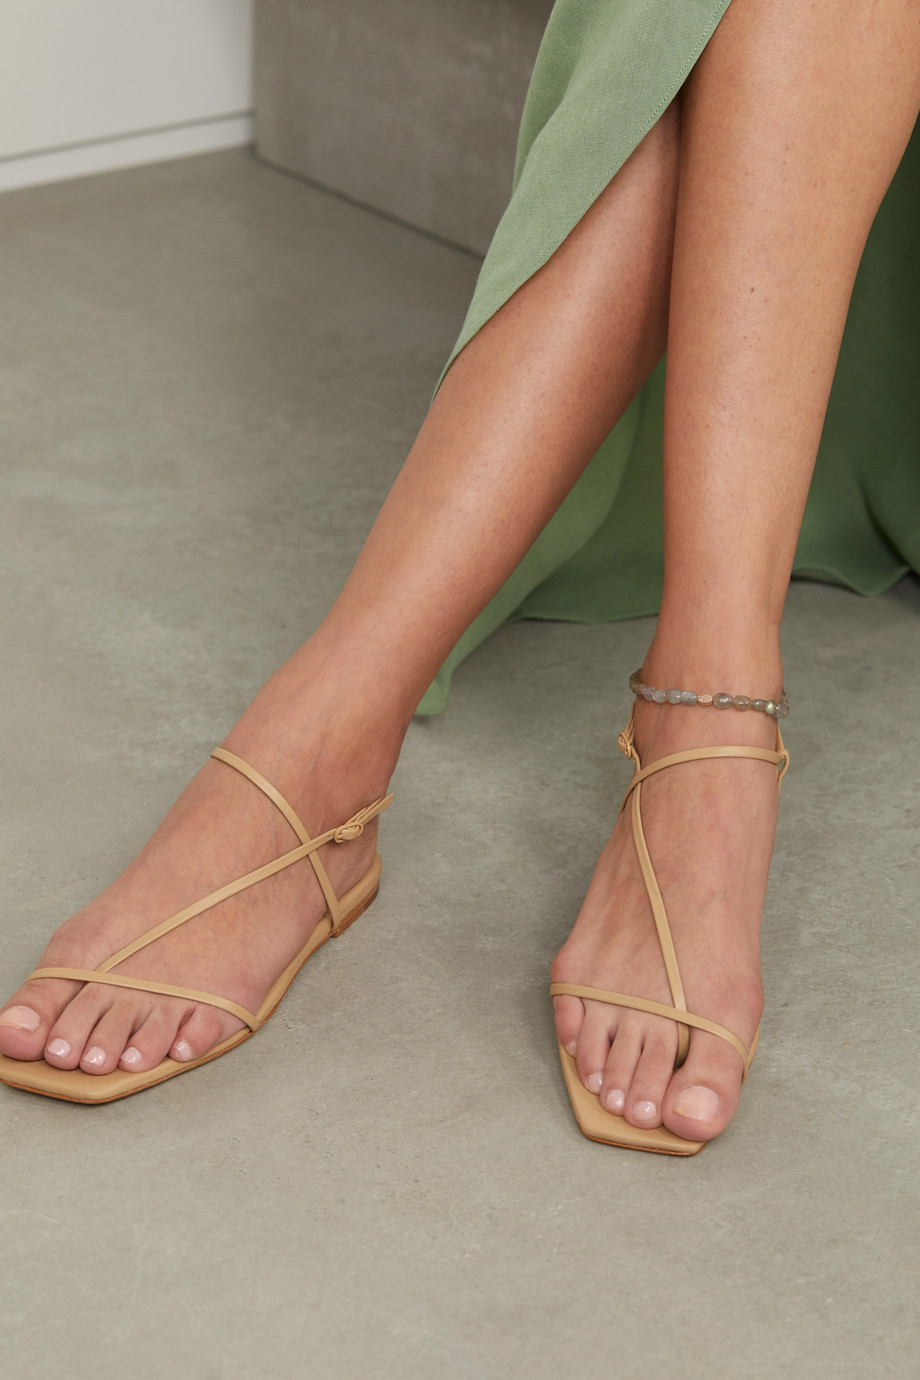 JACQUIE AICHE 14-karat rose gold, labradorite and diamond anklet